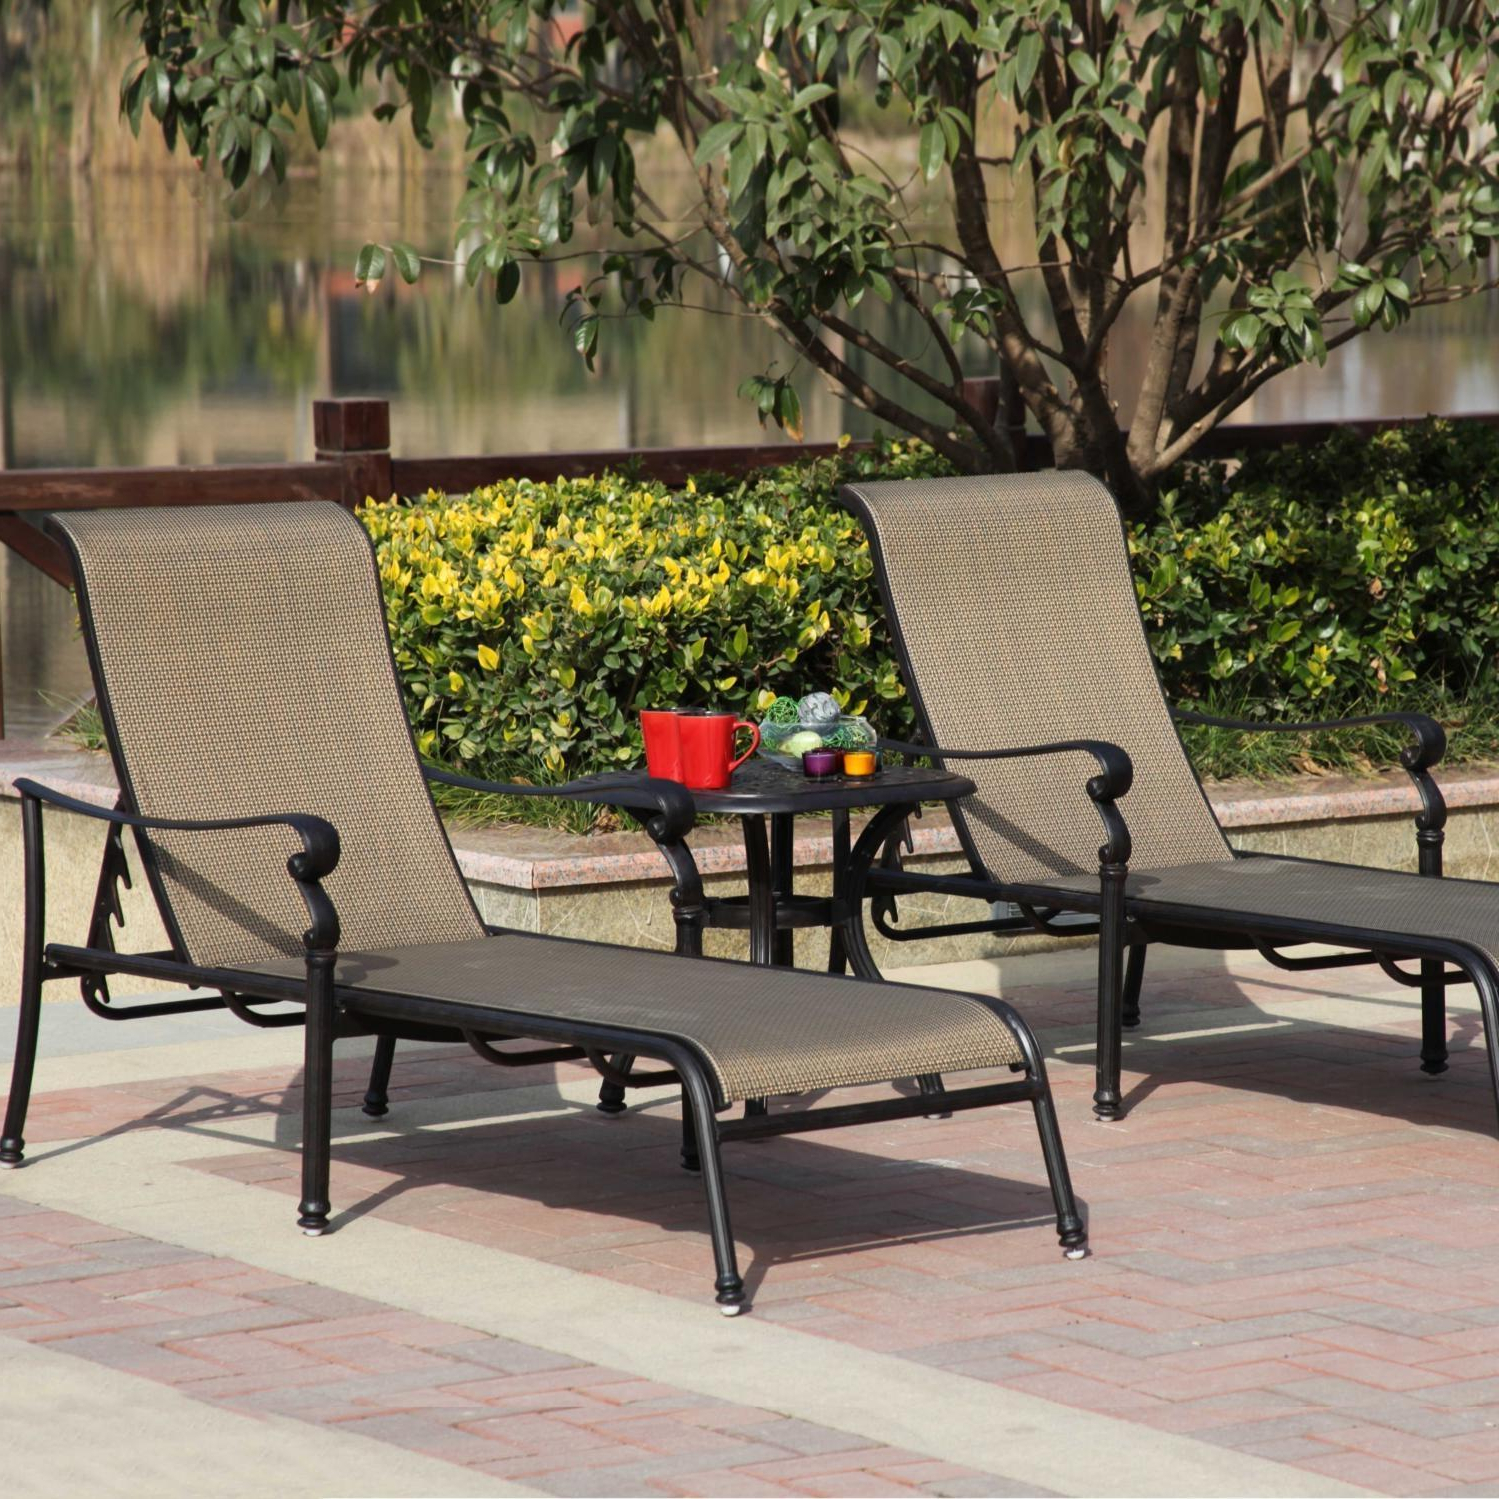 3 Piece Patio Lounger Sets Intended For Most Current Darlee Monterey 3 Piece Sling Patio Chaise Lounge Set (View 10 of 25)